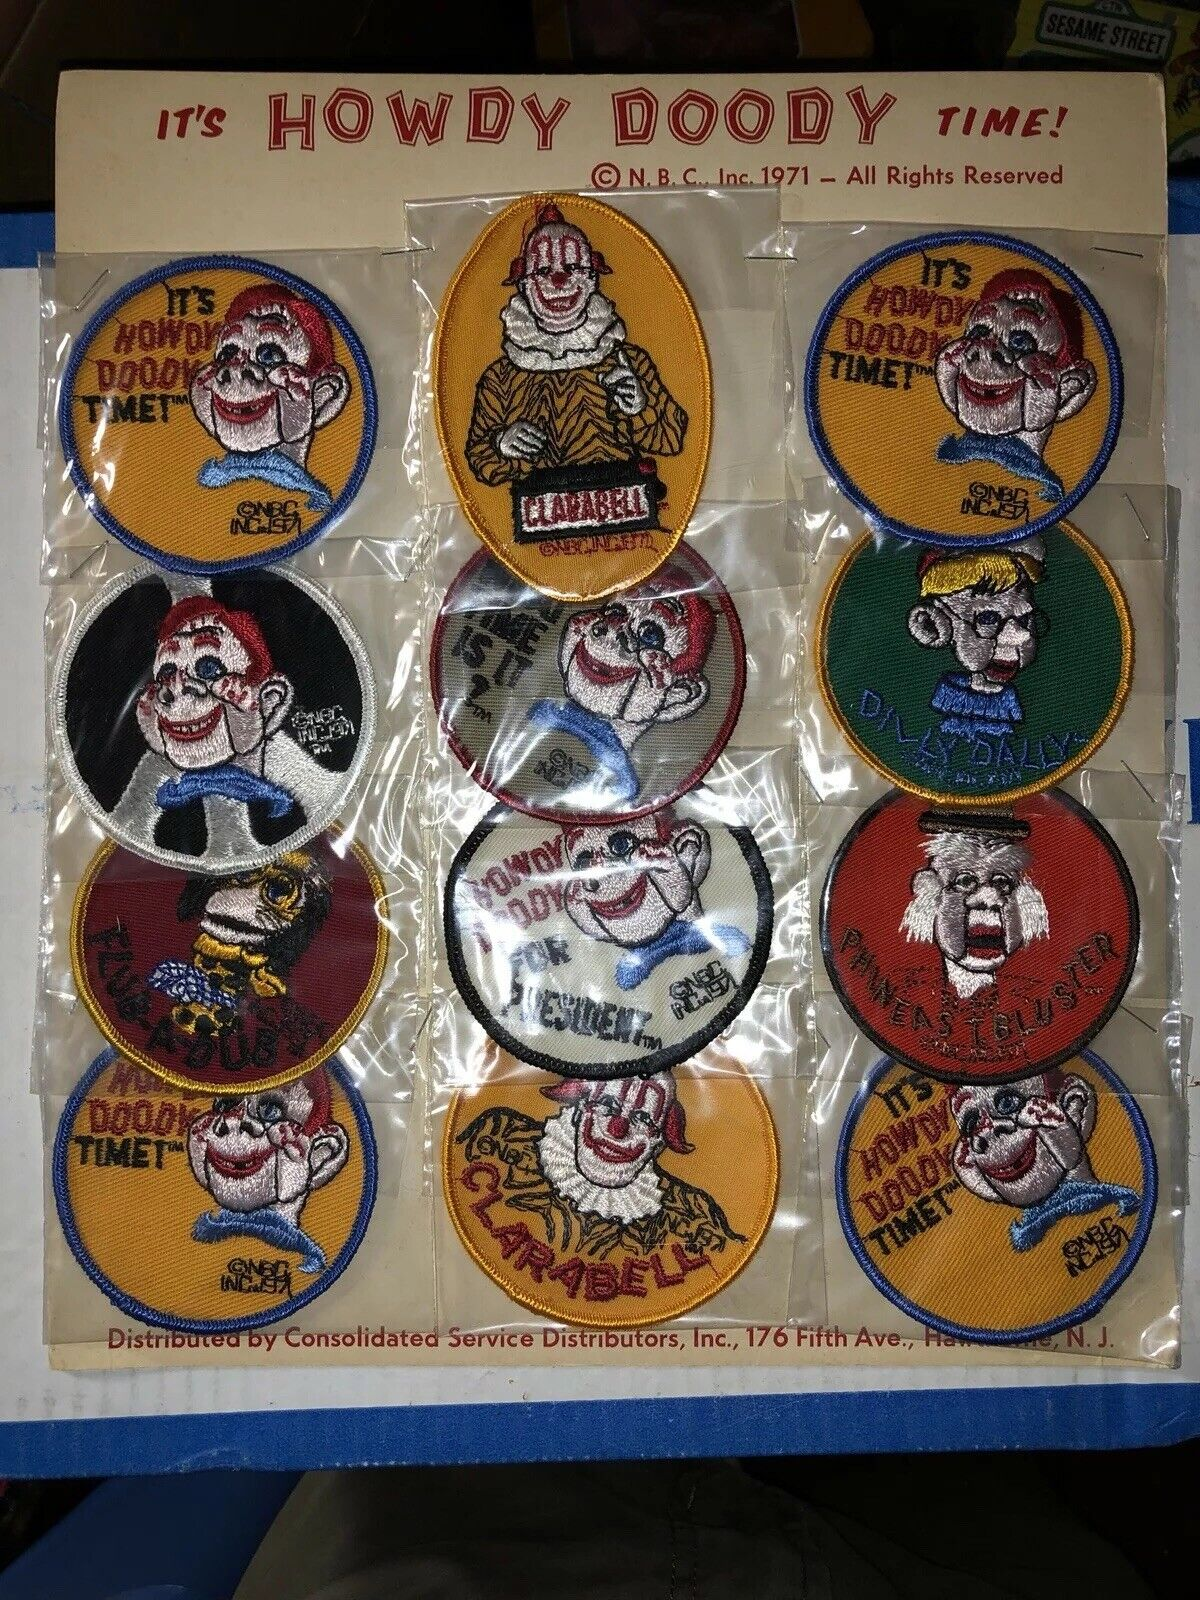 Vintage 1971 NBC NOS IT'S HOWDY DOODY TIME Patch Display 12 Pcs Clarabell Rare